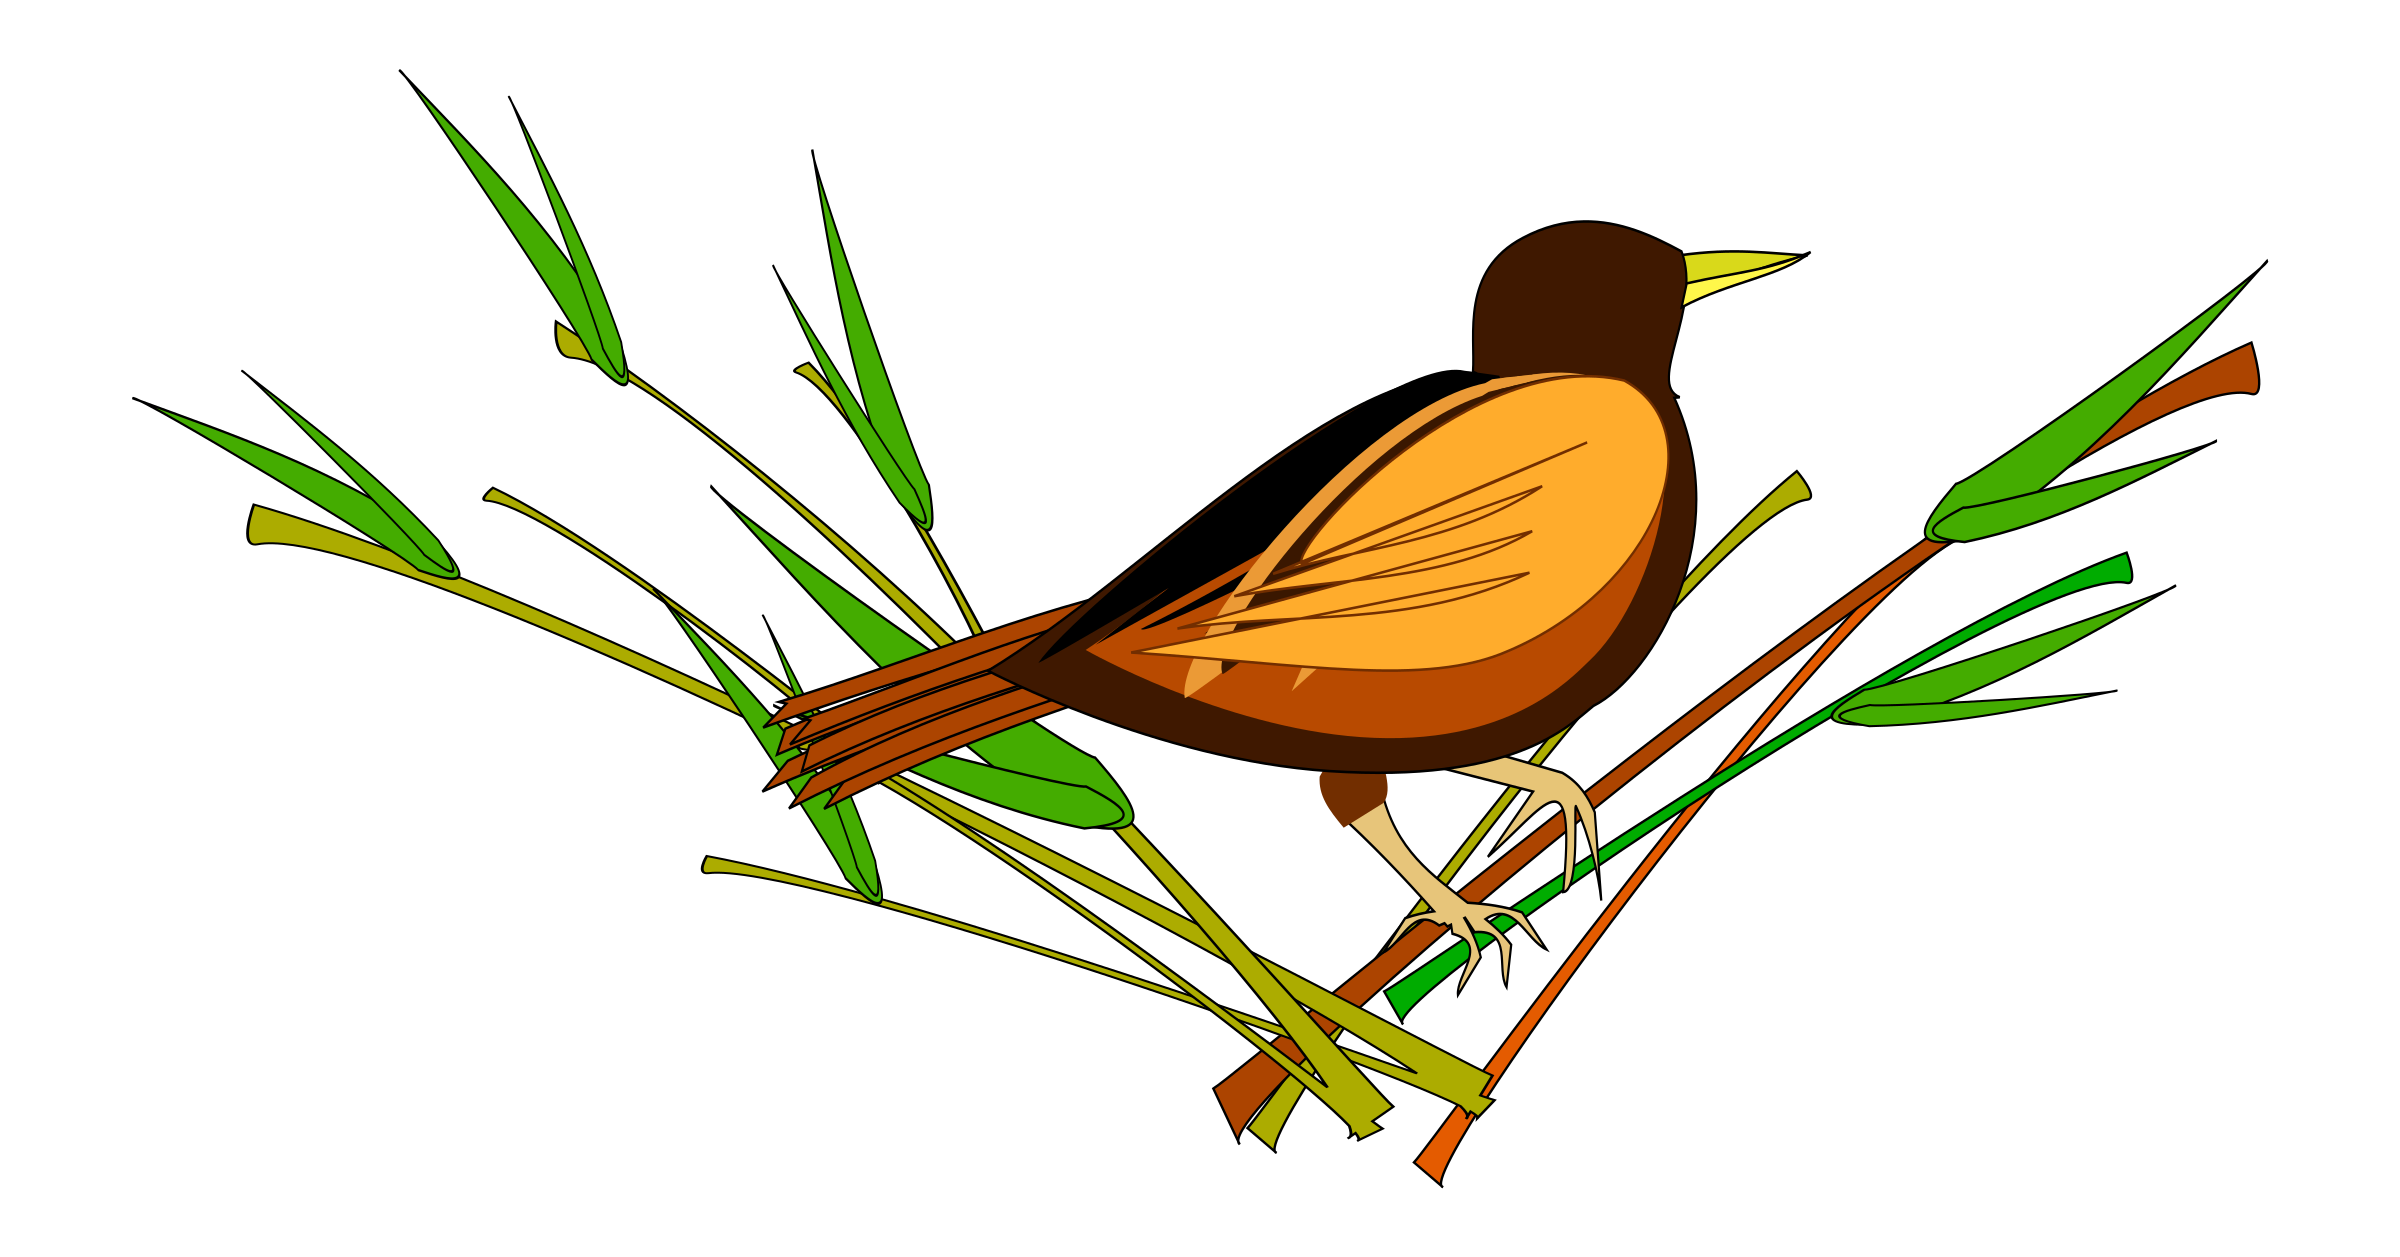 Sparrow sitting on Branch Vector Clipart image.